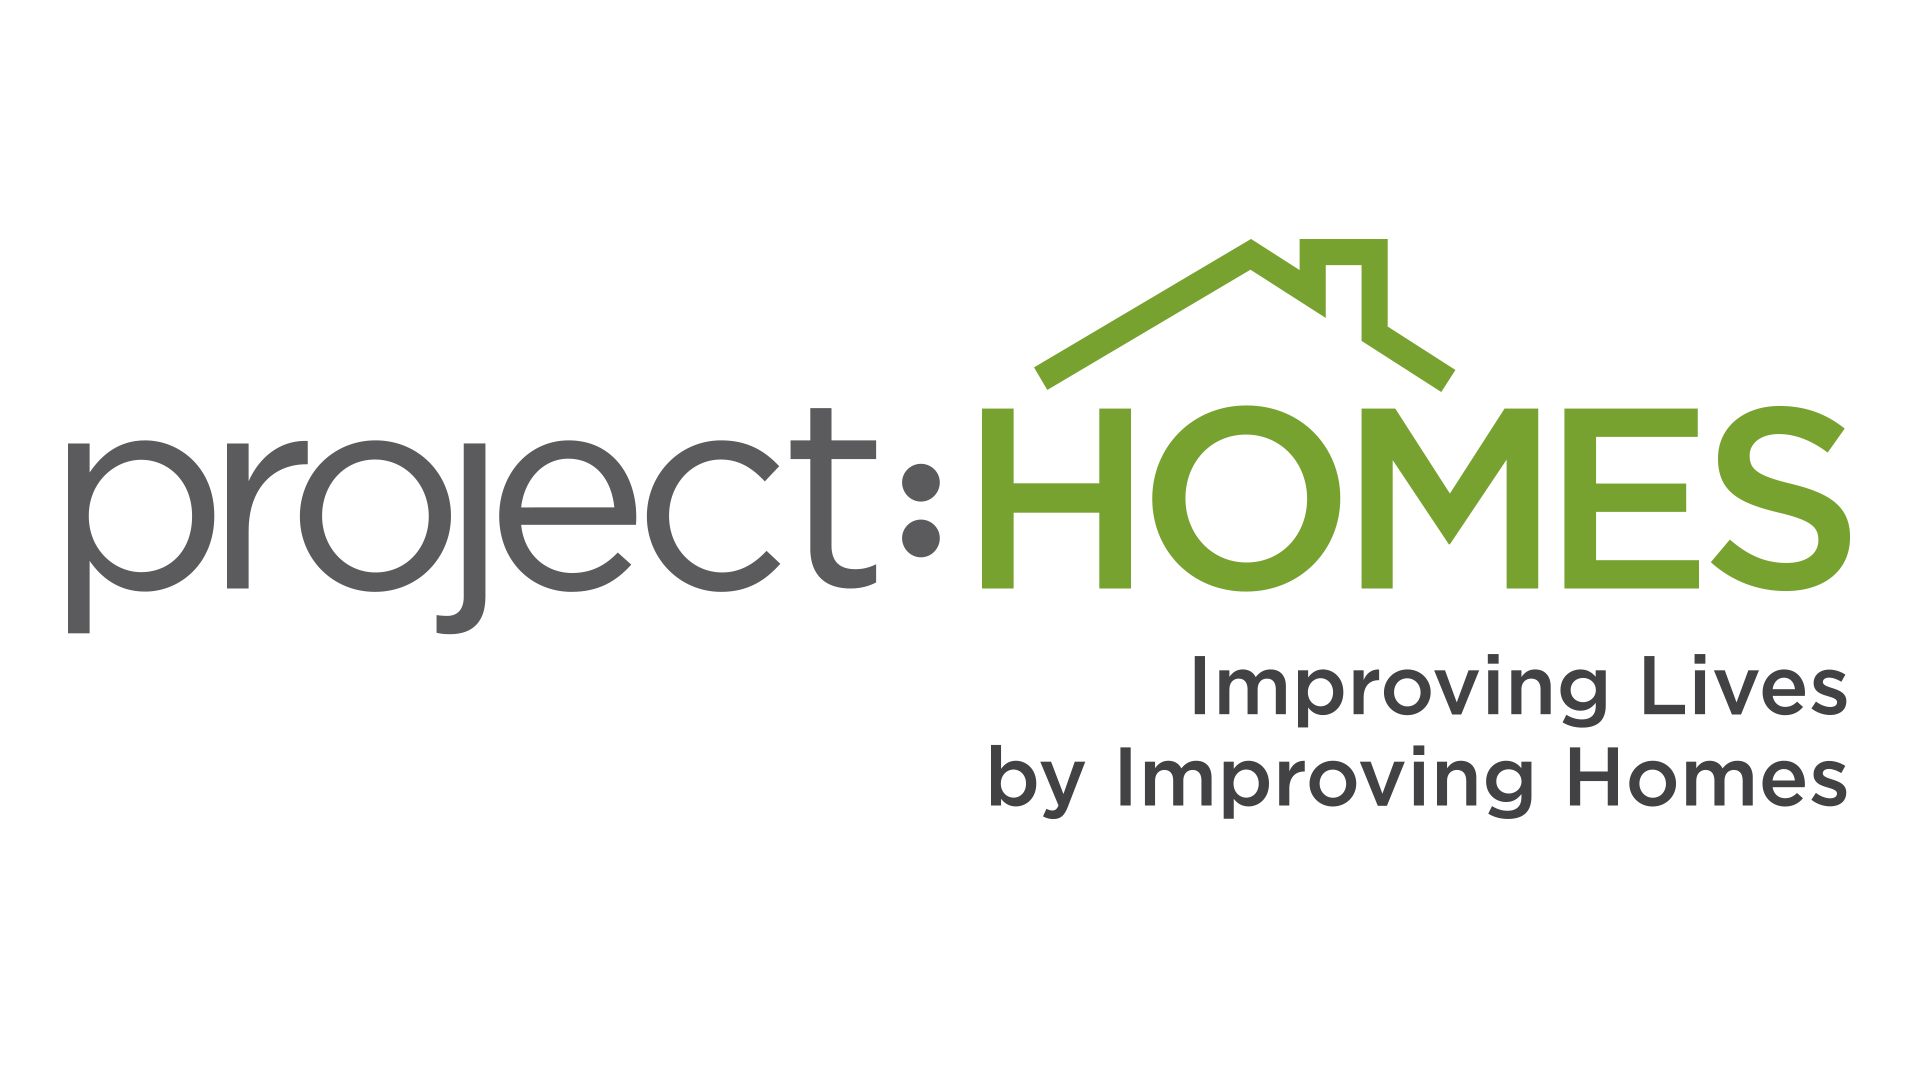 project:HOMES